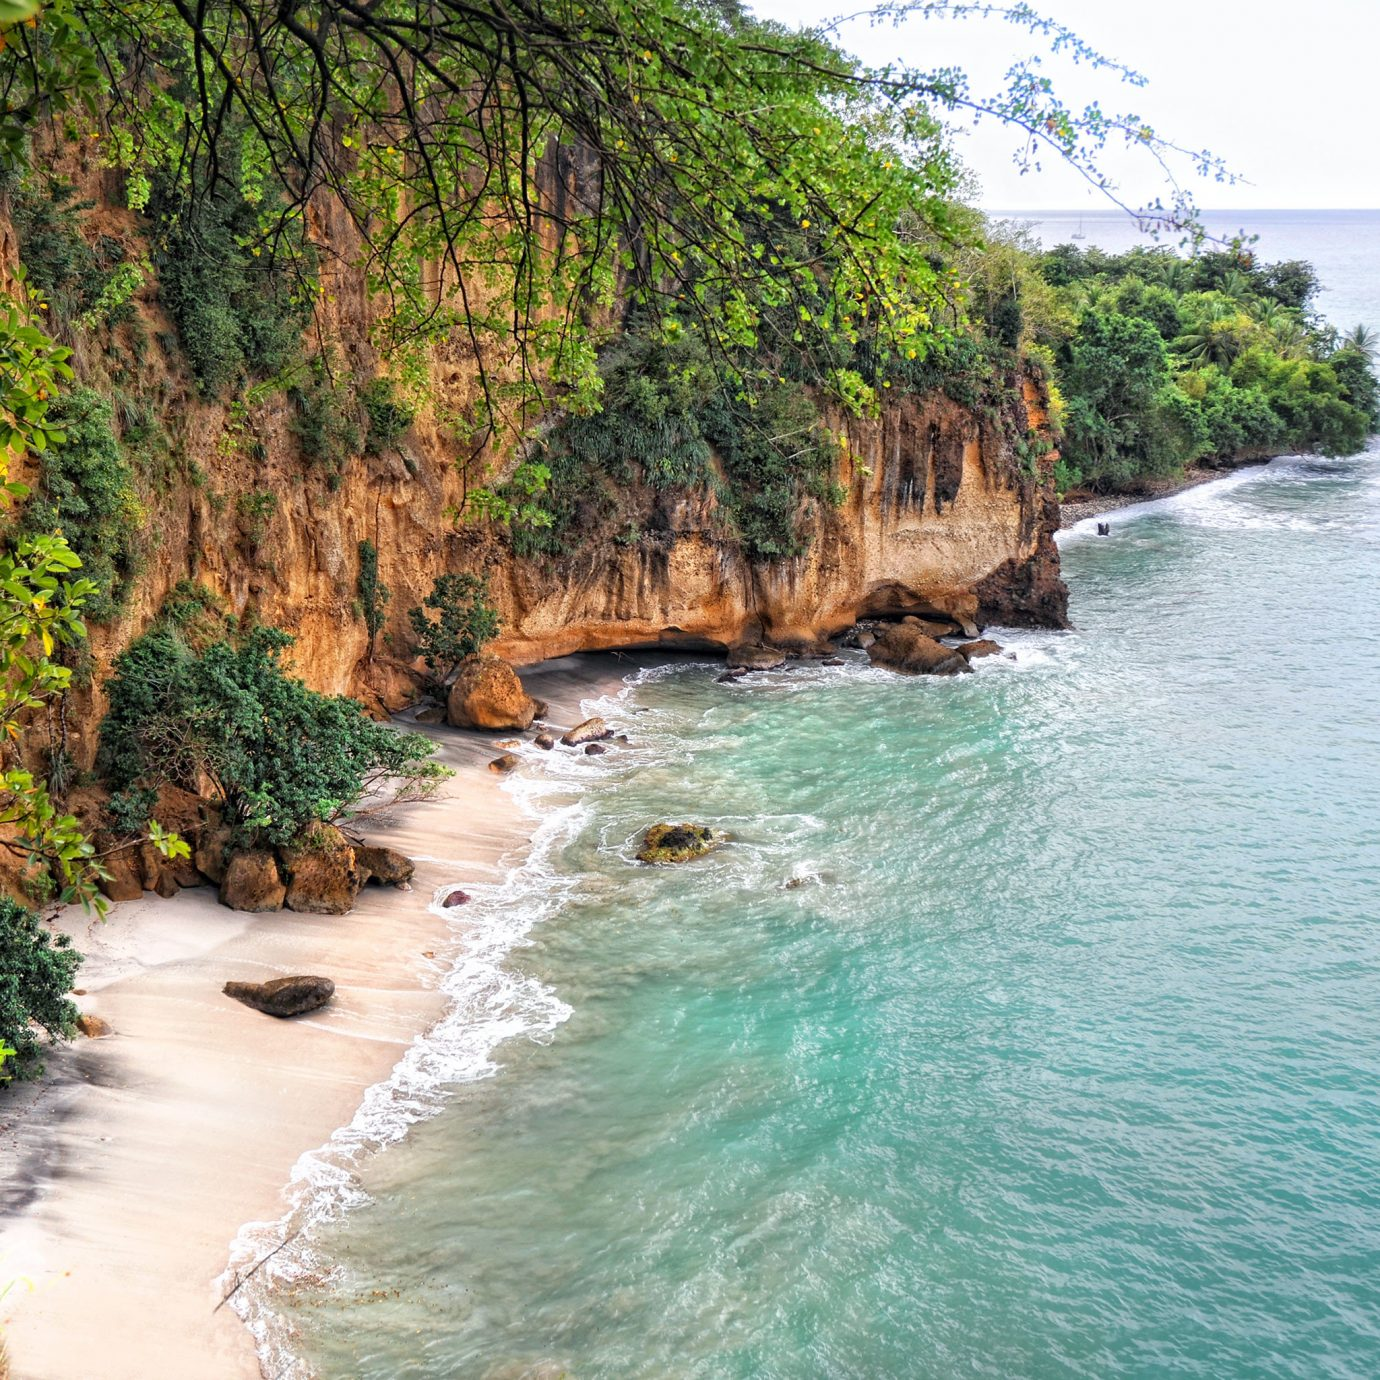 Beach Beachfront Eco Elegant Island Jungle Nature Resort Scenic views Secret Getaways Trip Ideas Waterfront water outdoor tree River landform geographical feature body of water Coast bay Sea cliff terrain traveling surrounded